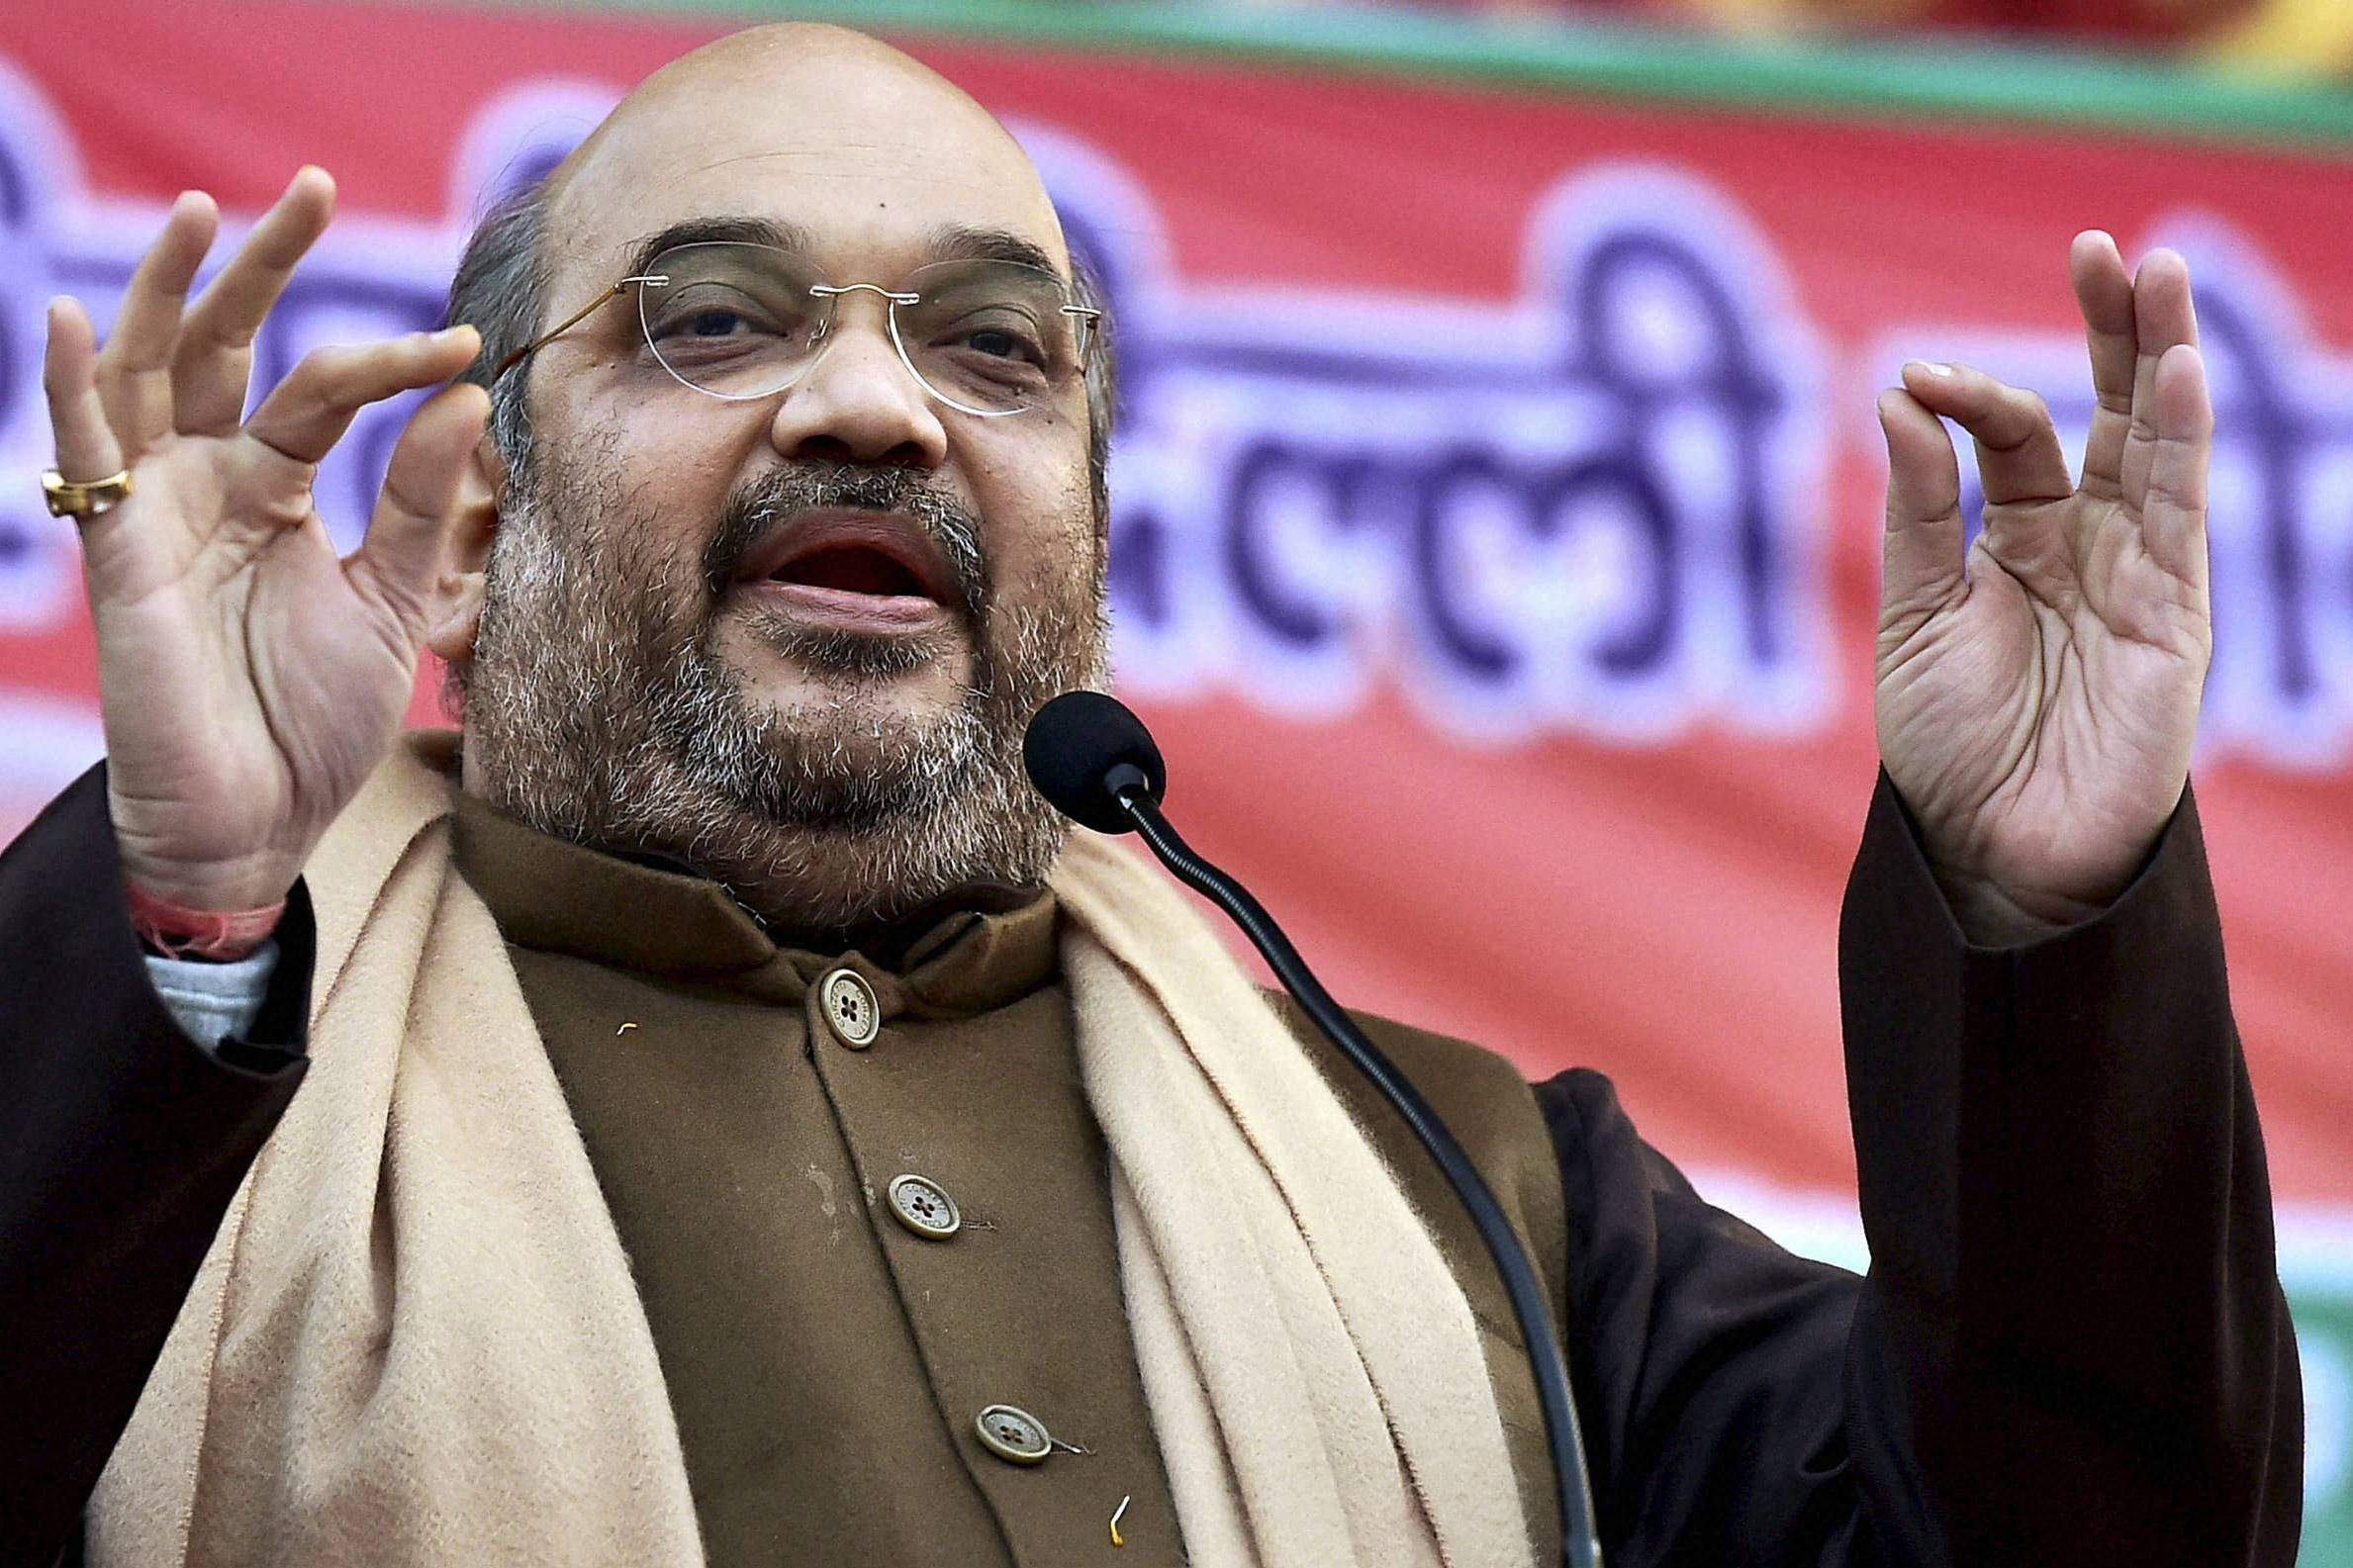 Amit Shah calls Mahatma Gandhi 'chatur baniya', Congress demands apology